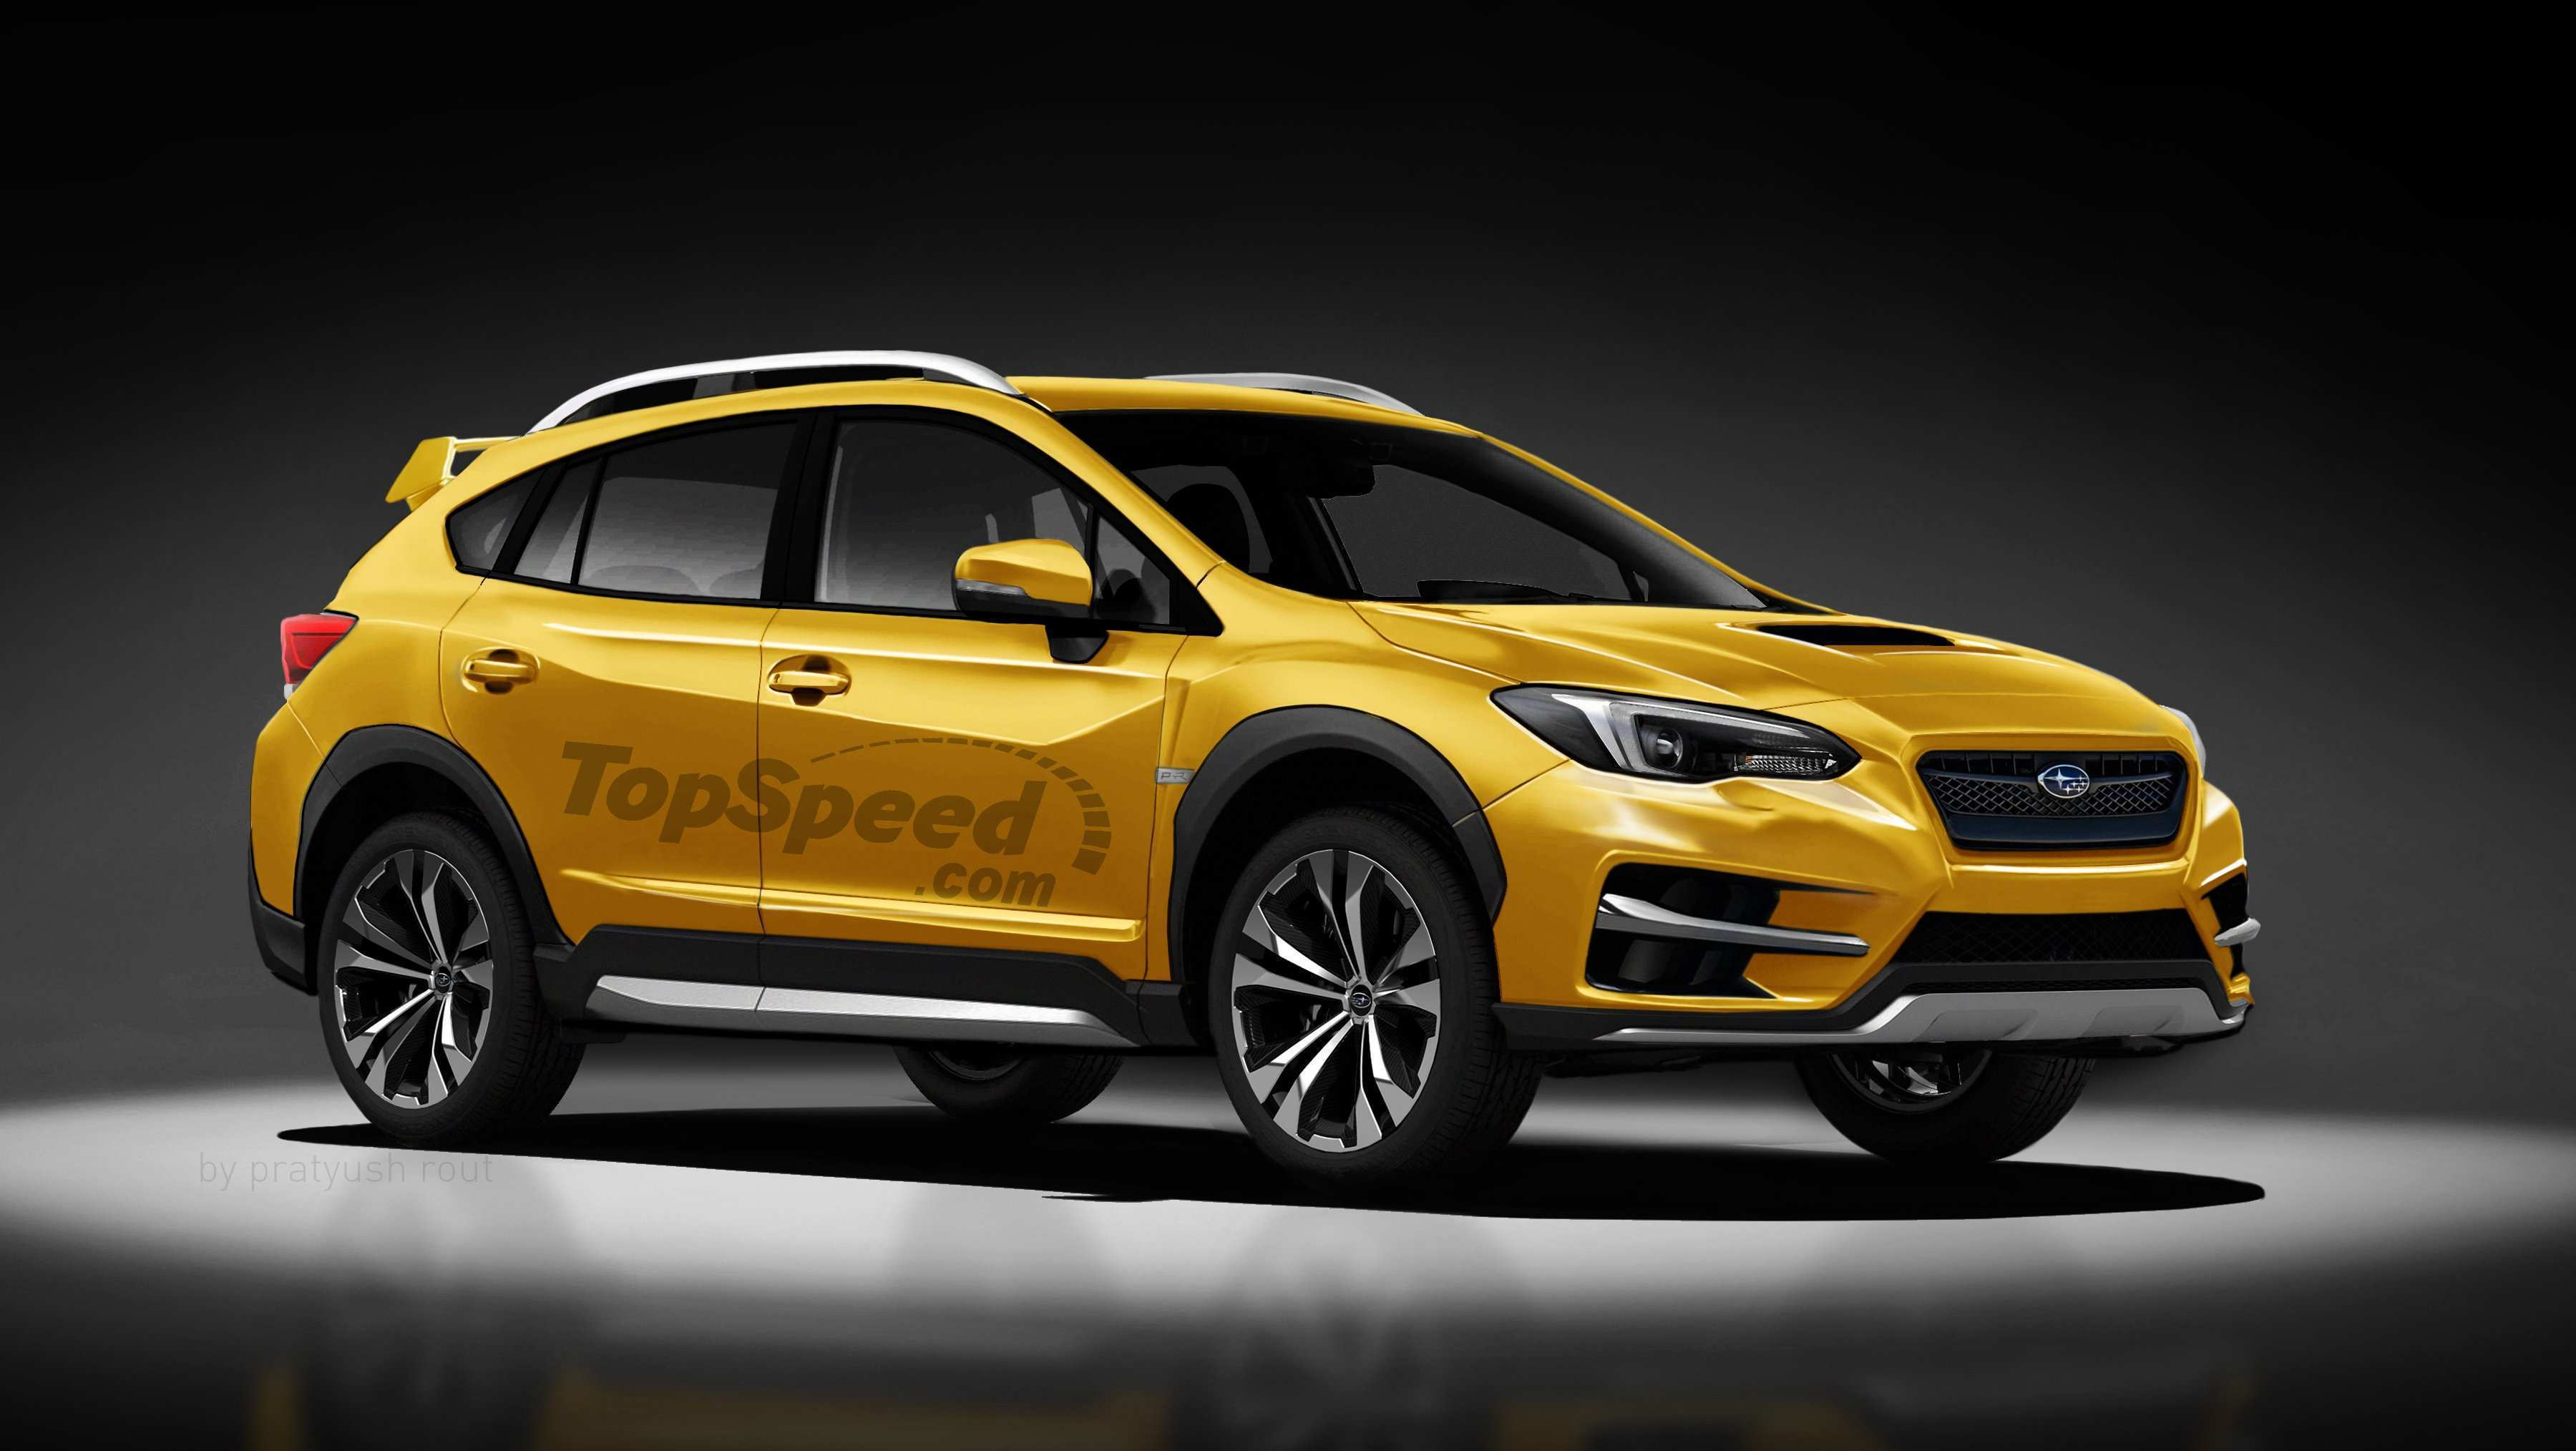 88 Gallery of 2020 Subaru Crosstrek First Drive for 2020 Subaru Crosstrek